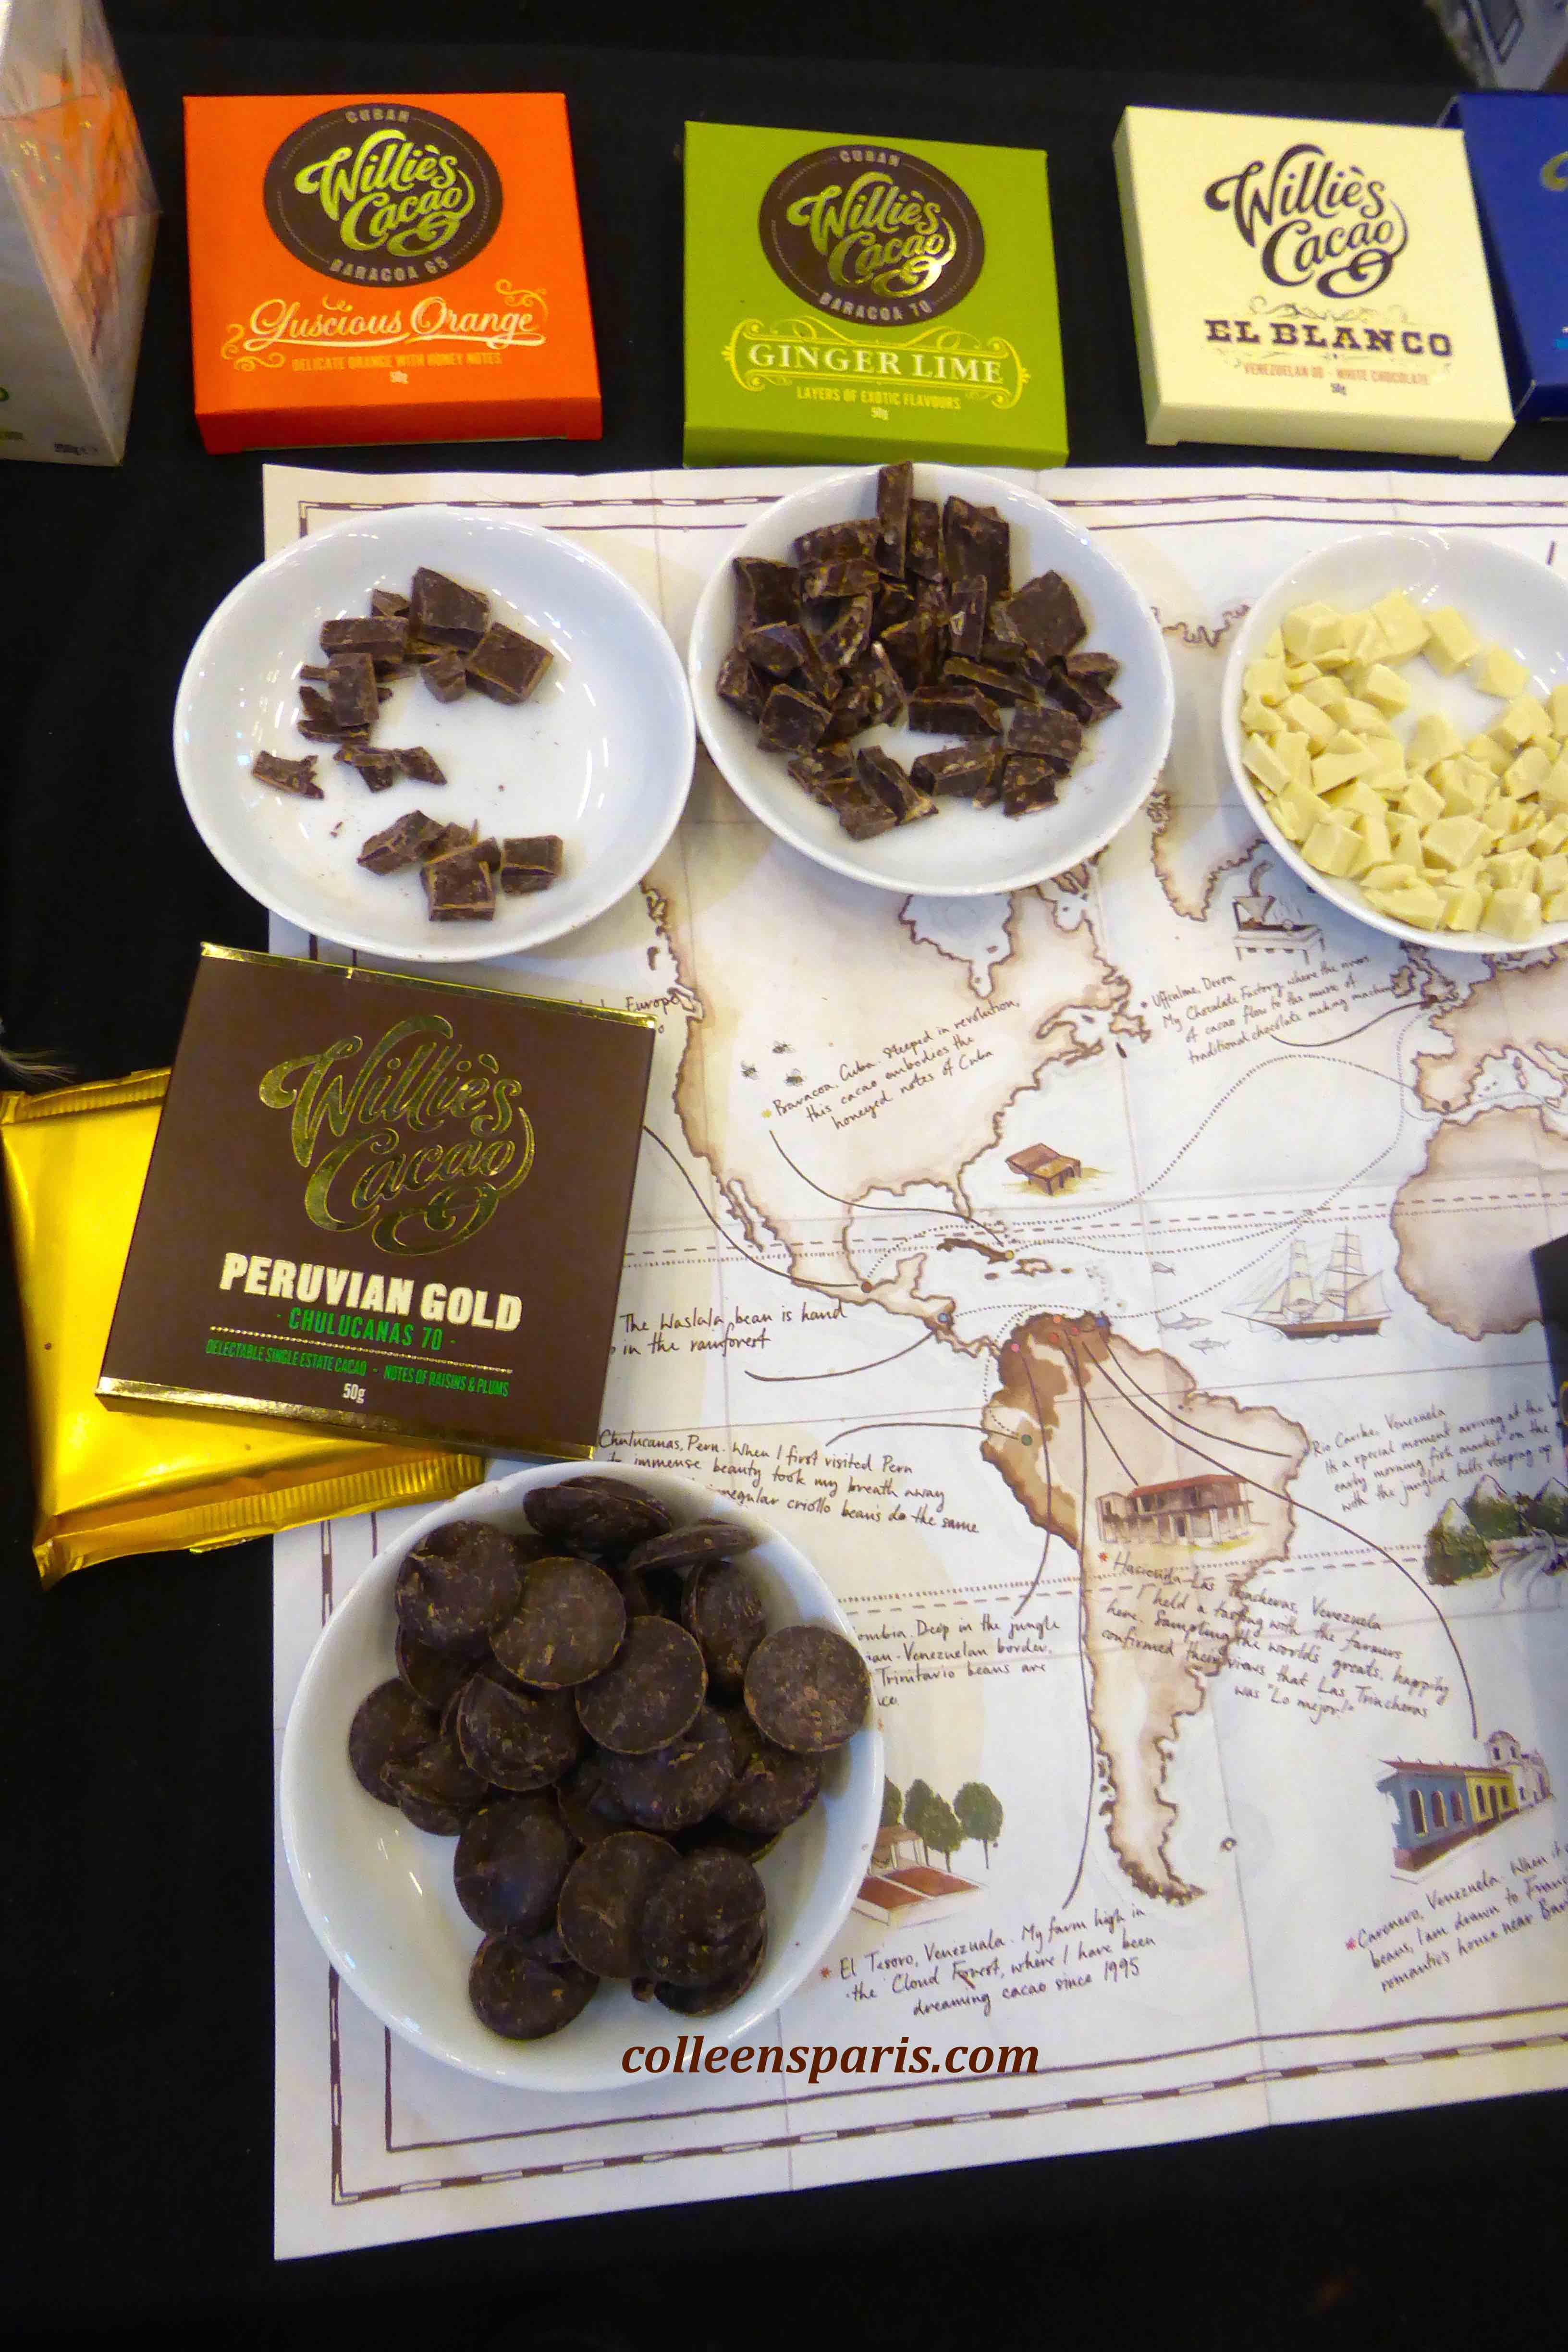 567 Salon Chocolat willies 2015